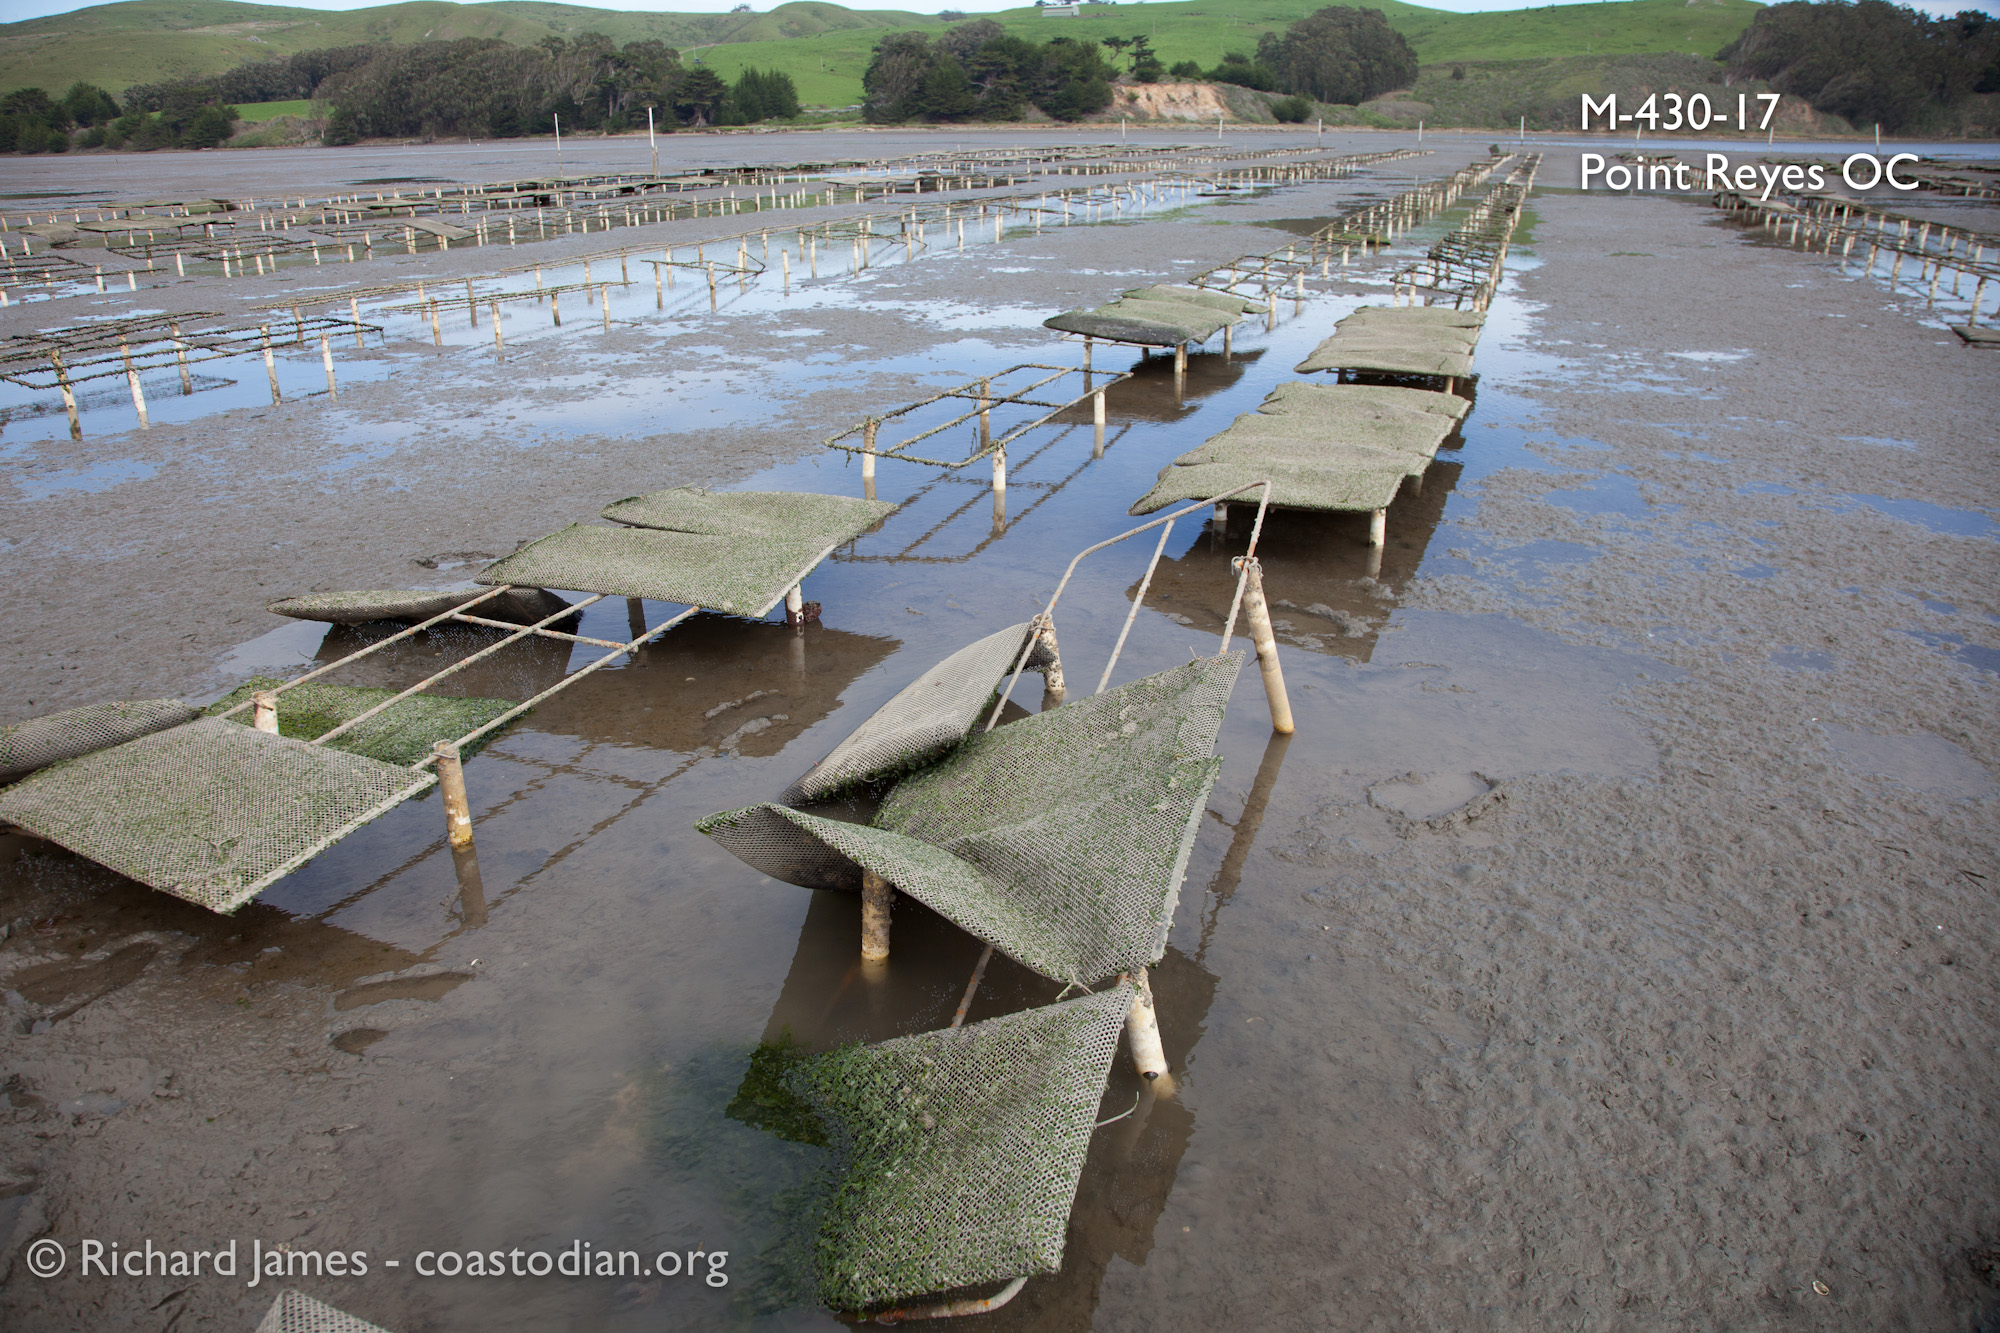 Racks in a state of disrepair on lease M-430-17, run by Point Reyes Oyster Company.